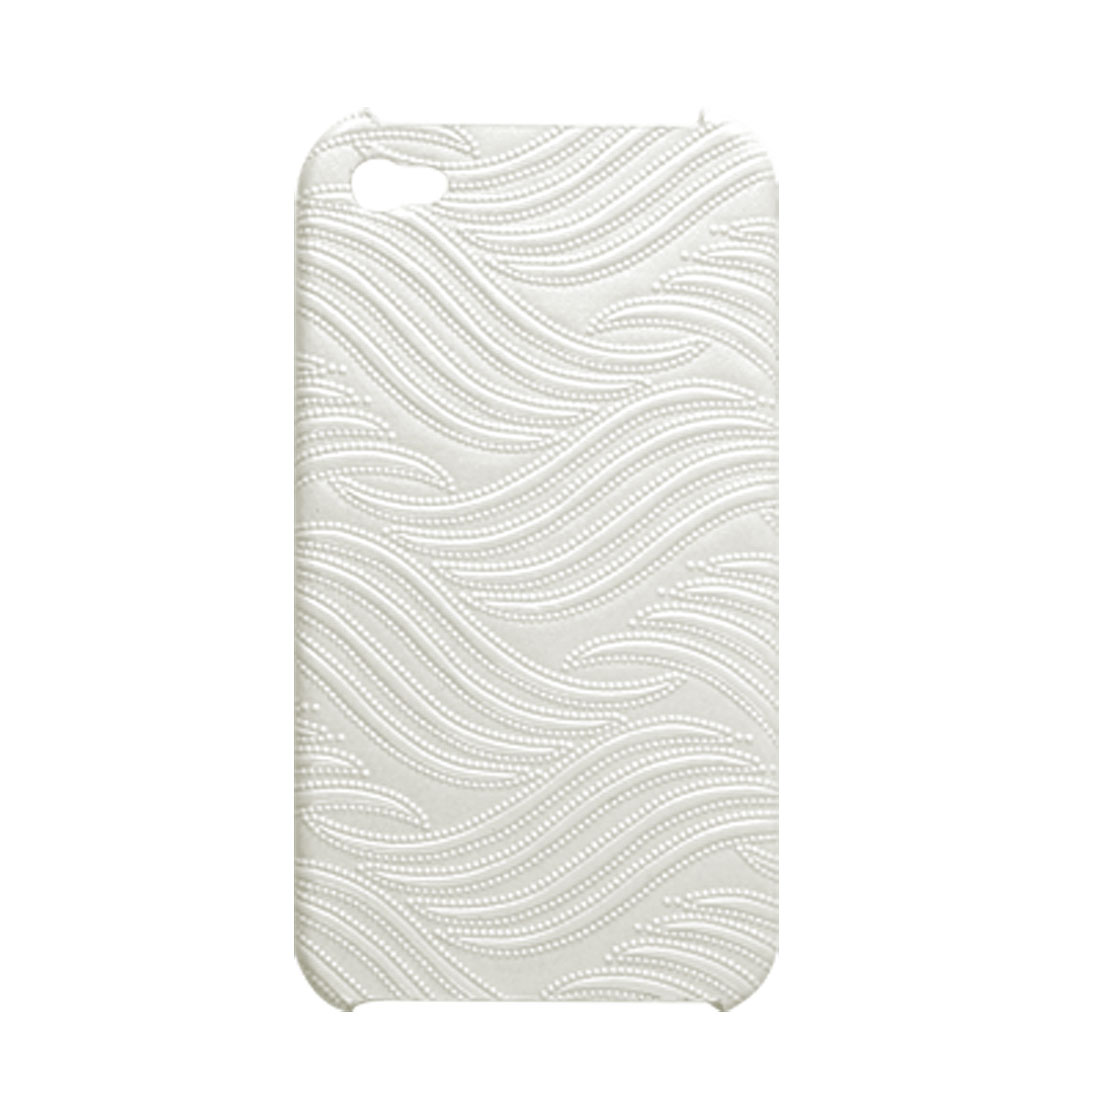 White Texture Faux Leather Coated Hard Plastic Cover for iPhone 4